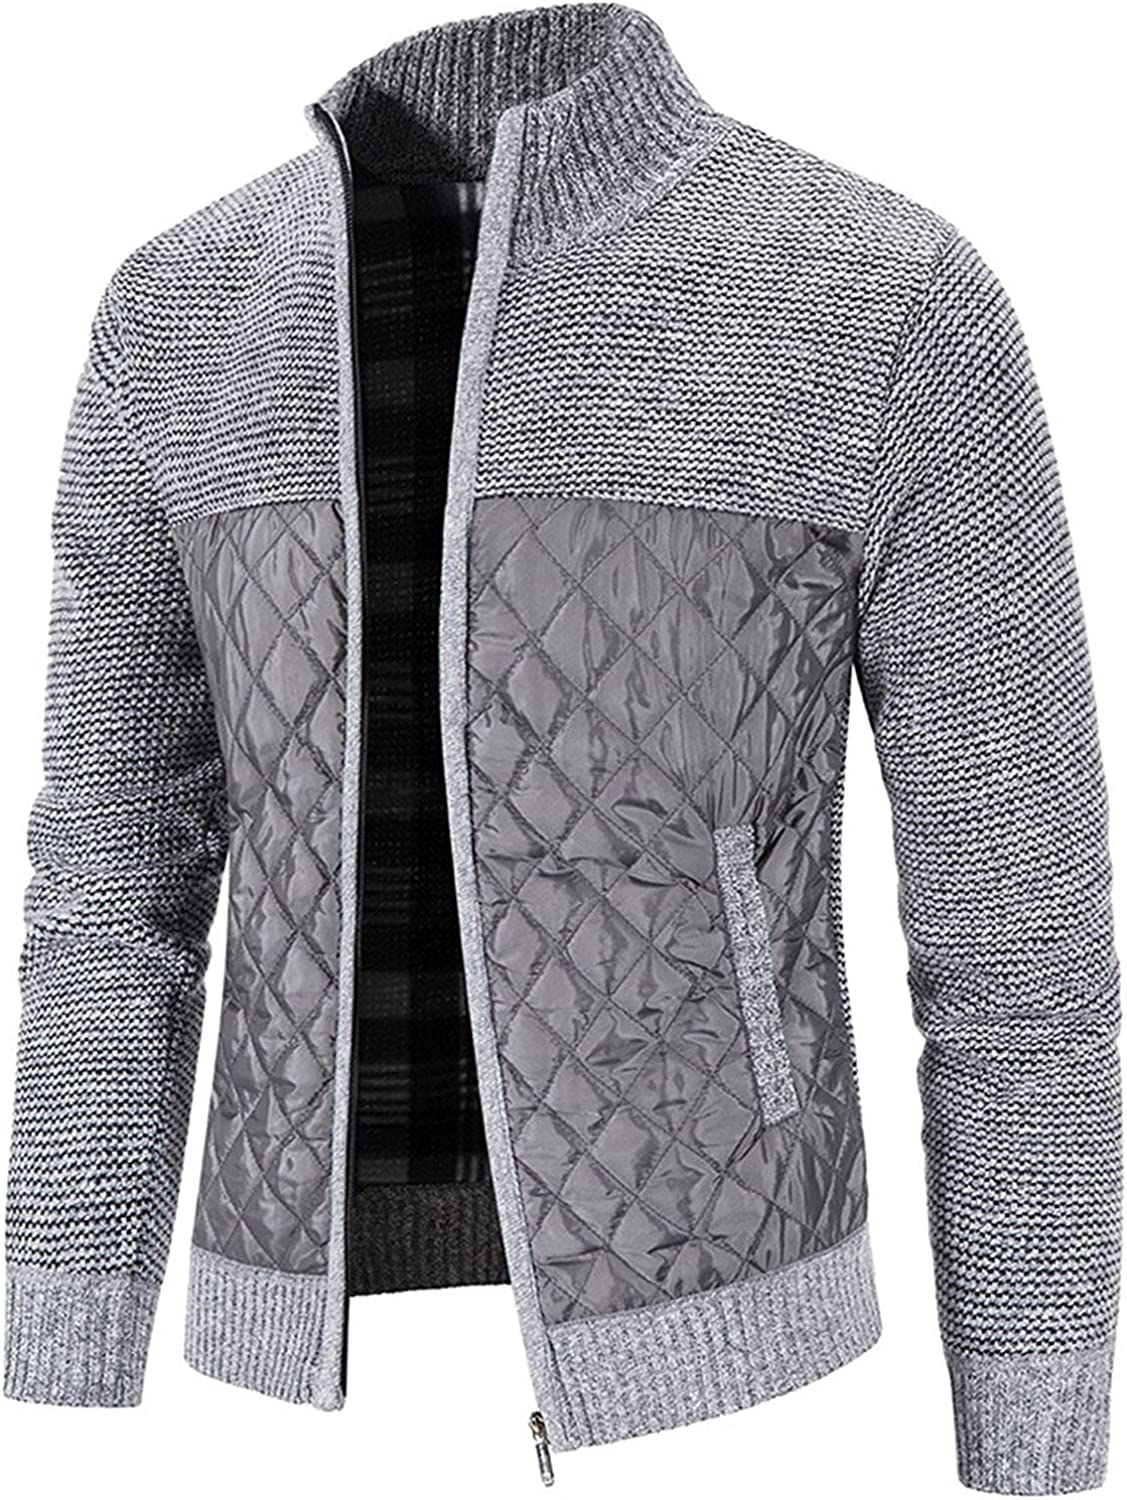 Lightweight mens Low price jackets Men's Cotton-padded Cardigan Knitted Ja Max 90% OFF